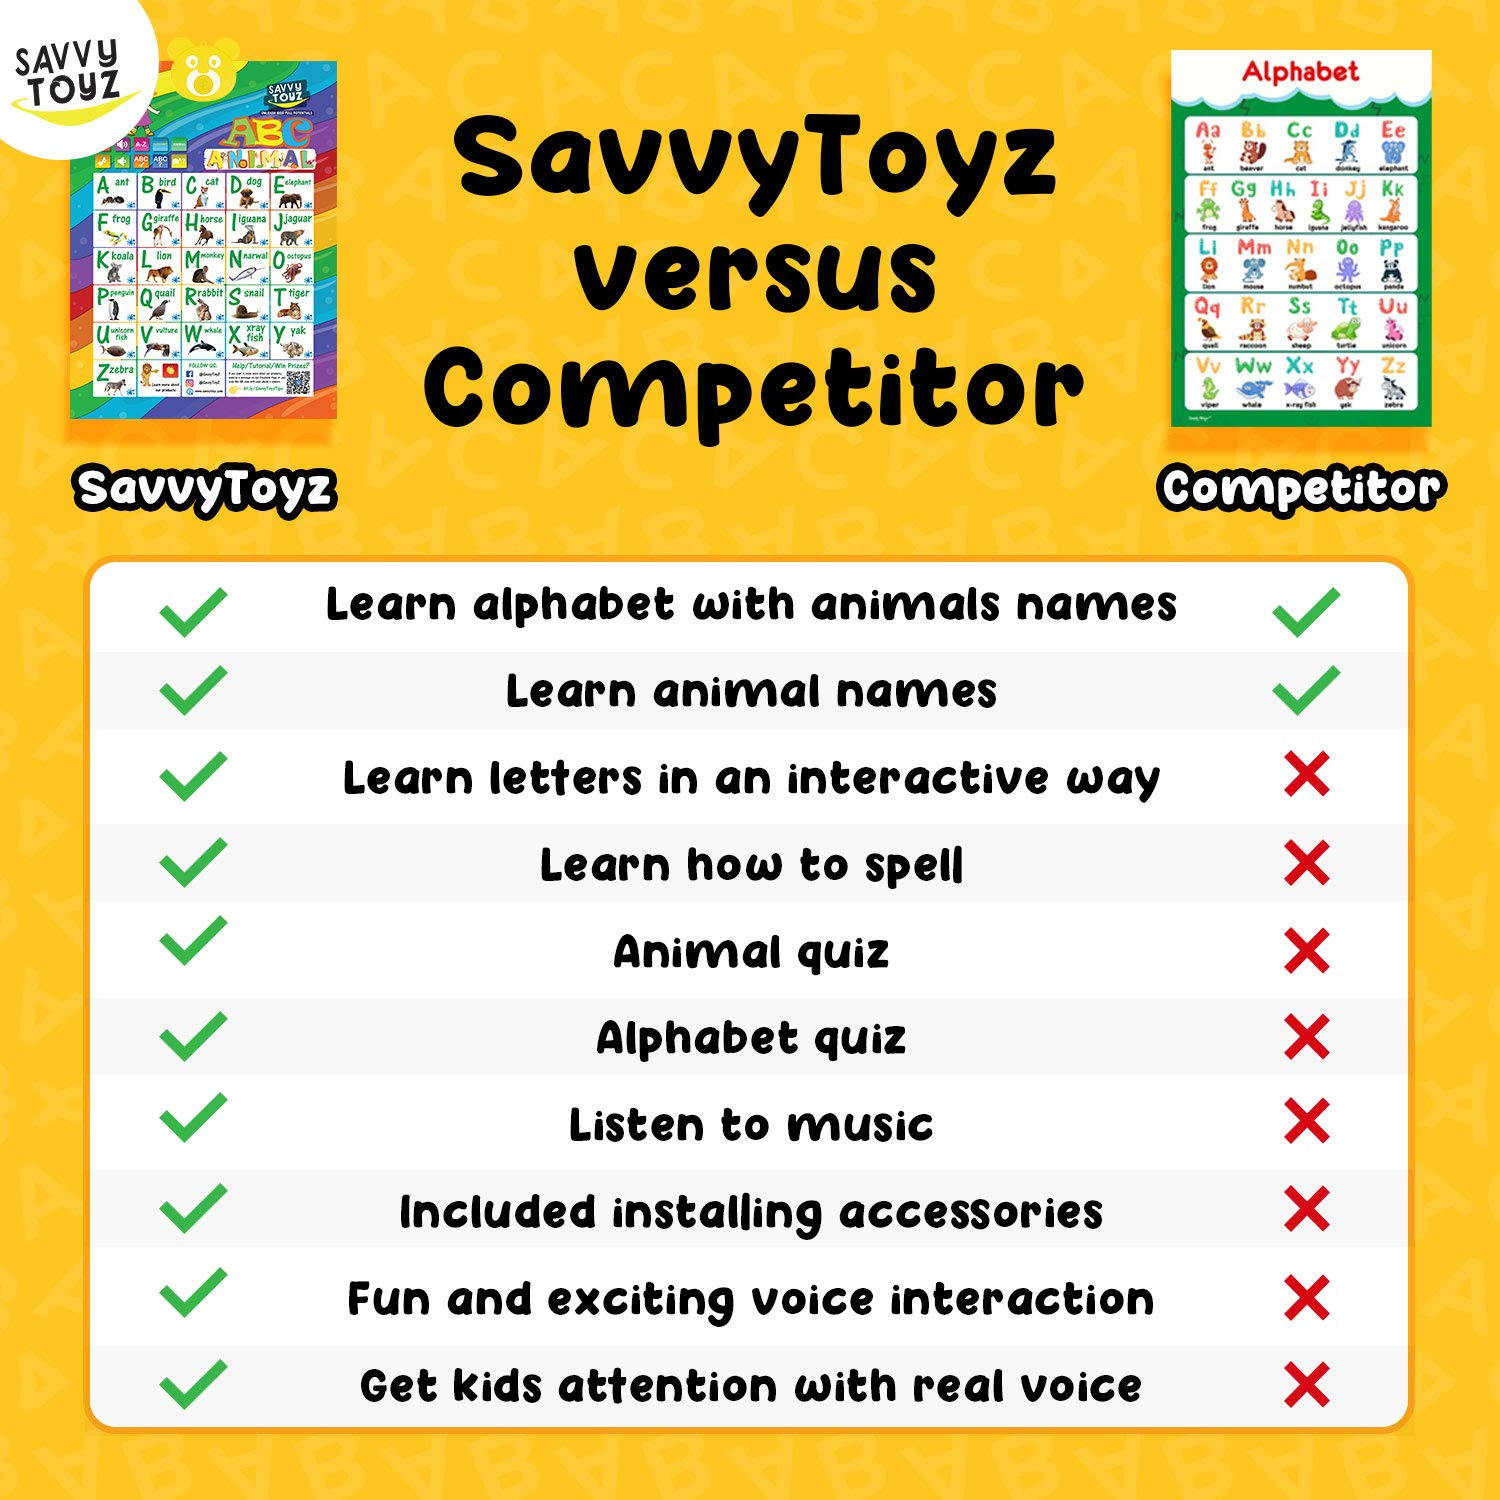 SavvyToyZ Educational Toys for 2-5 Year Olds - Help Your Toddler's Development and Education with Preschool Learning Toys - Fun Talking Interactive Poster for Entertainment and Learning Alphabet by SavvyToyZ (Image #3)